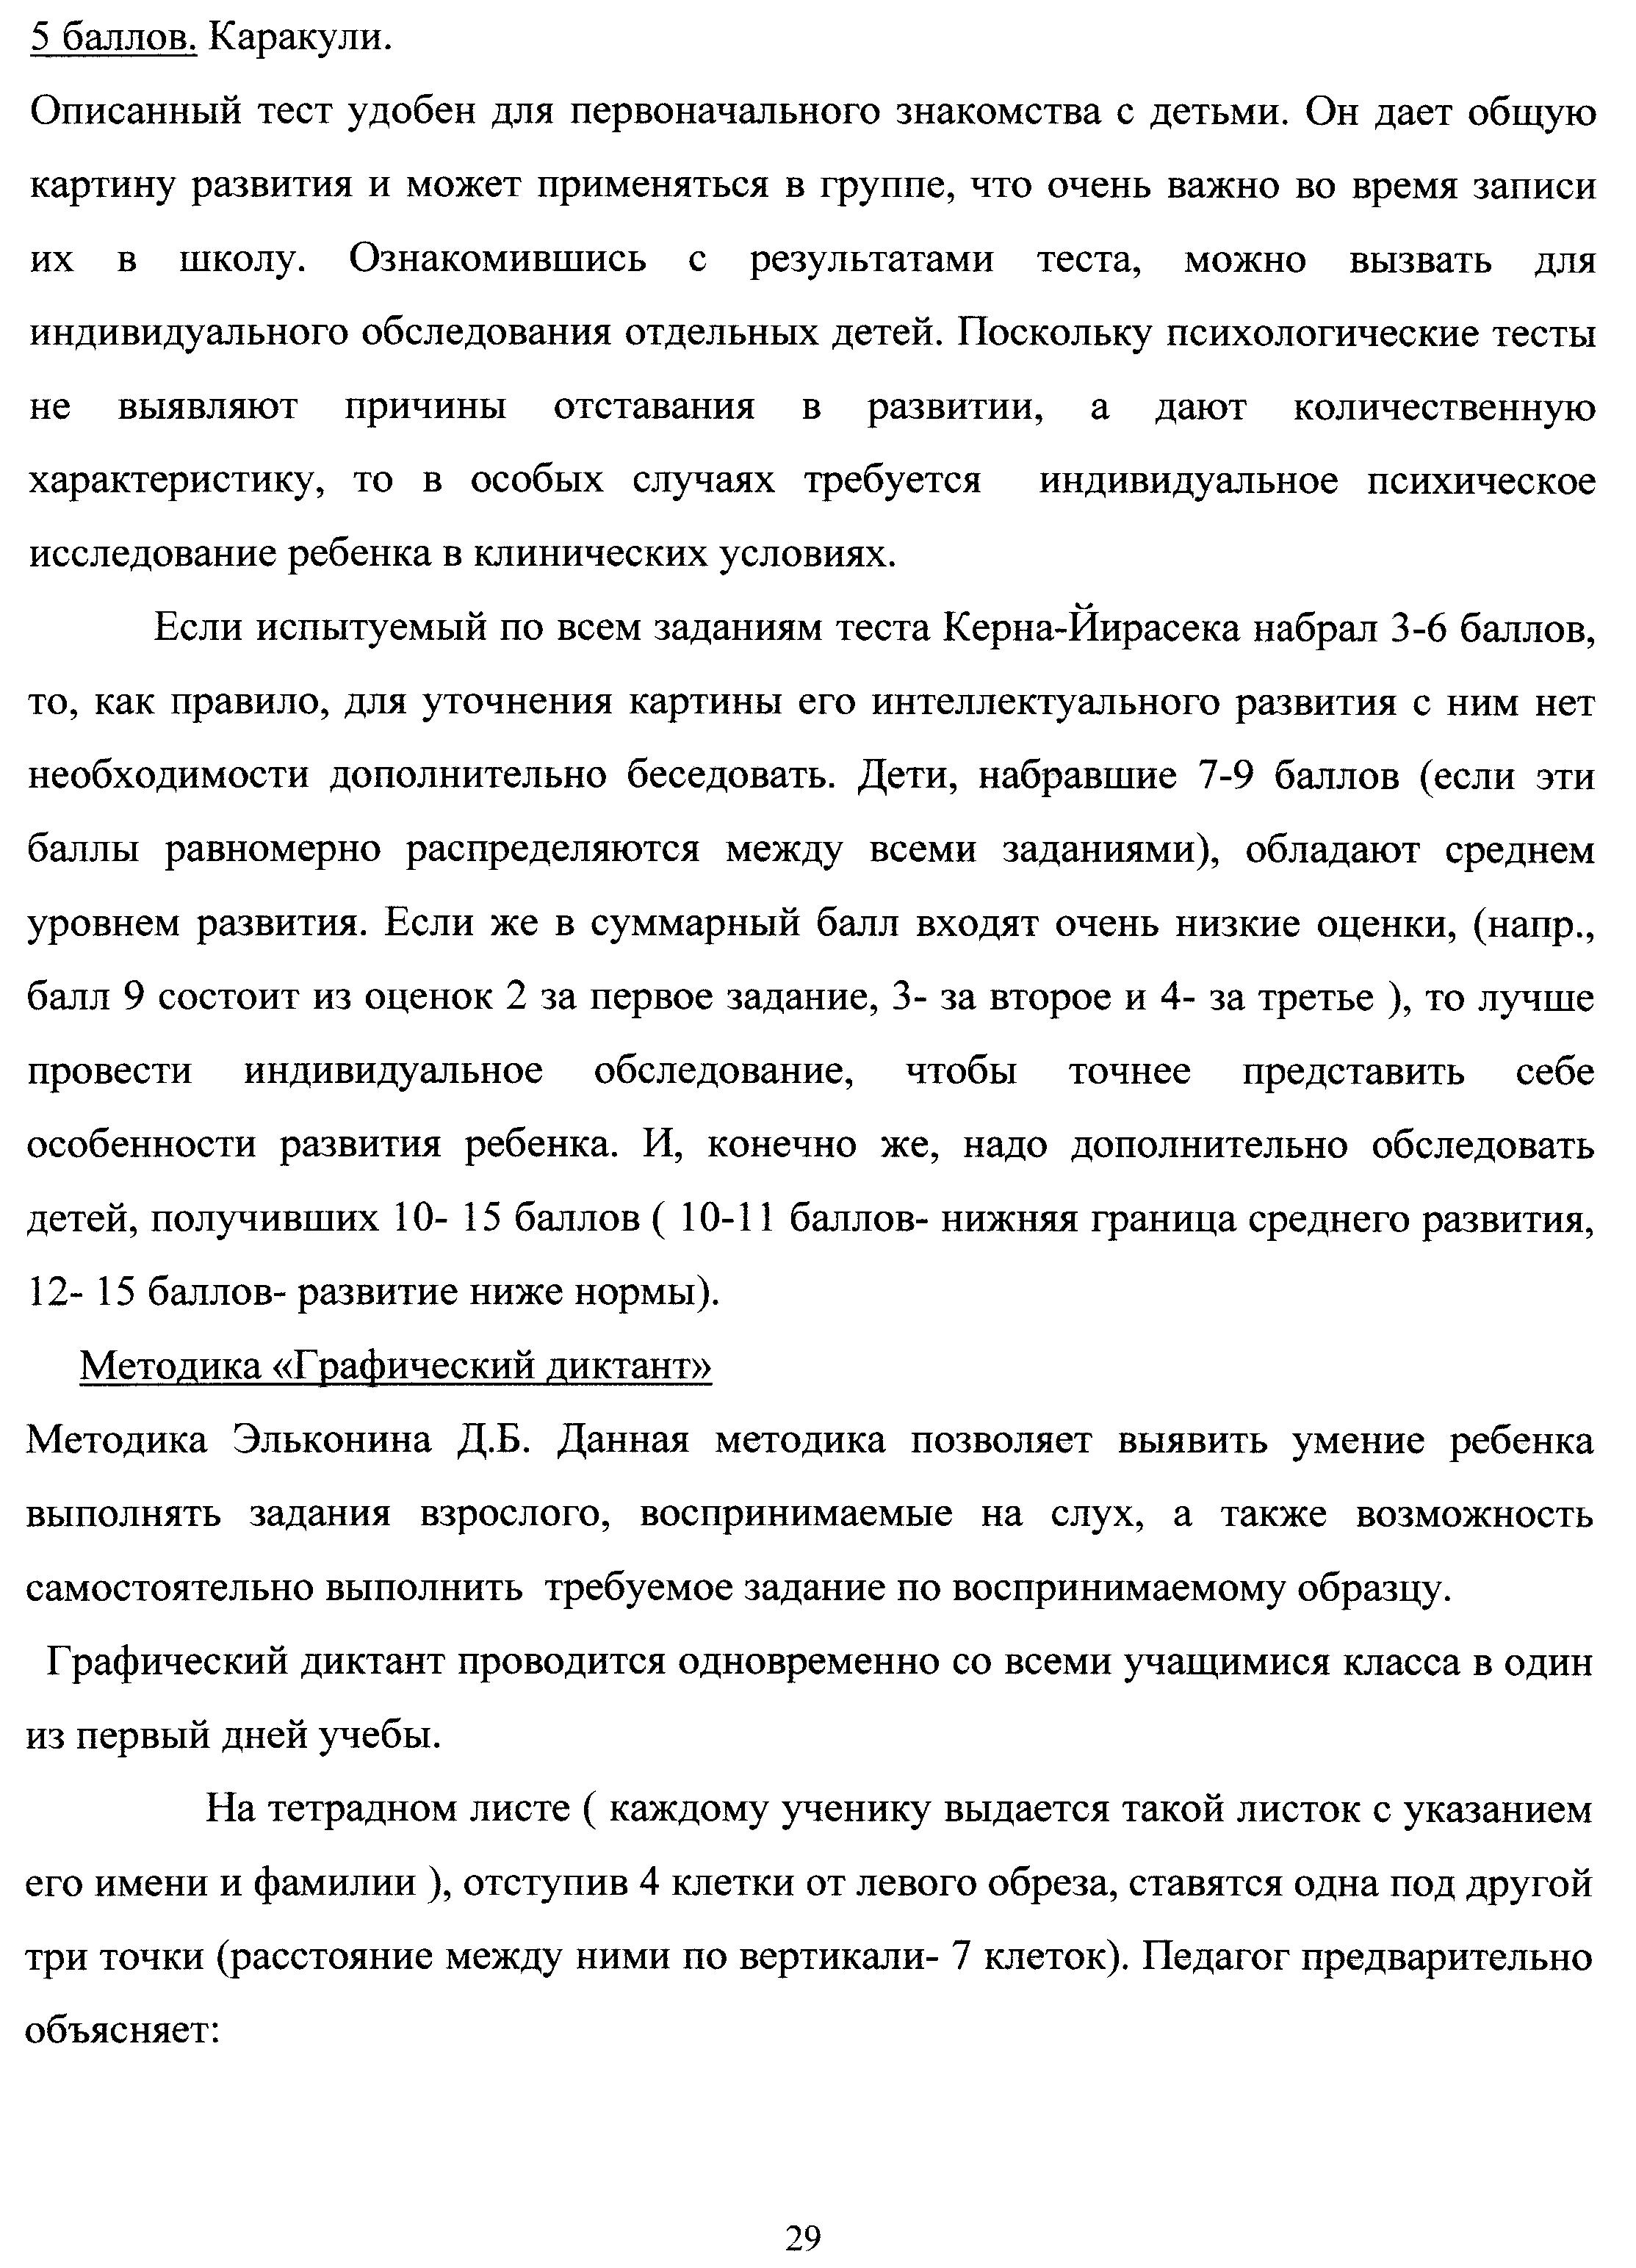 C:\Users\ЛАРИСА\Documents\Scanned Documents\Рисунок (133).jpg